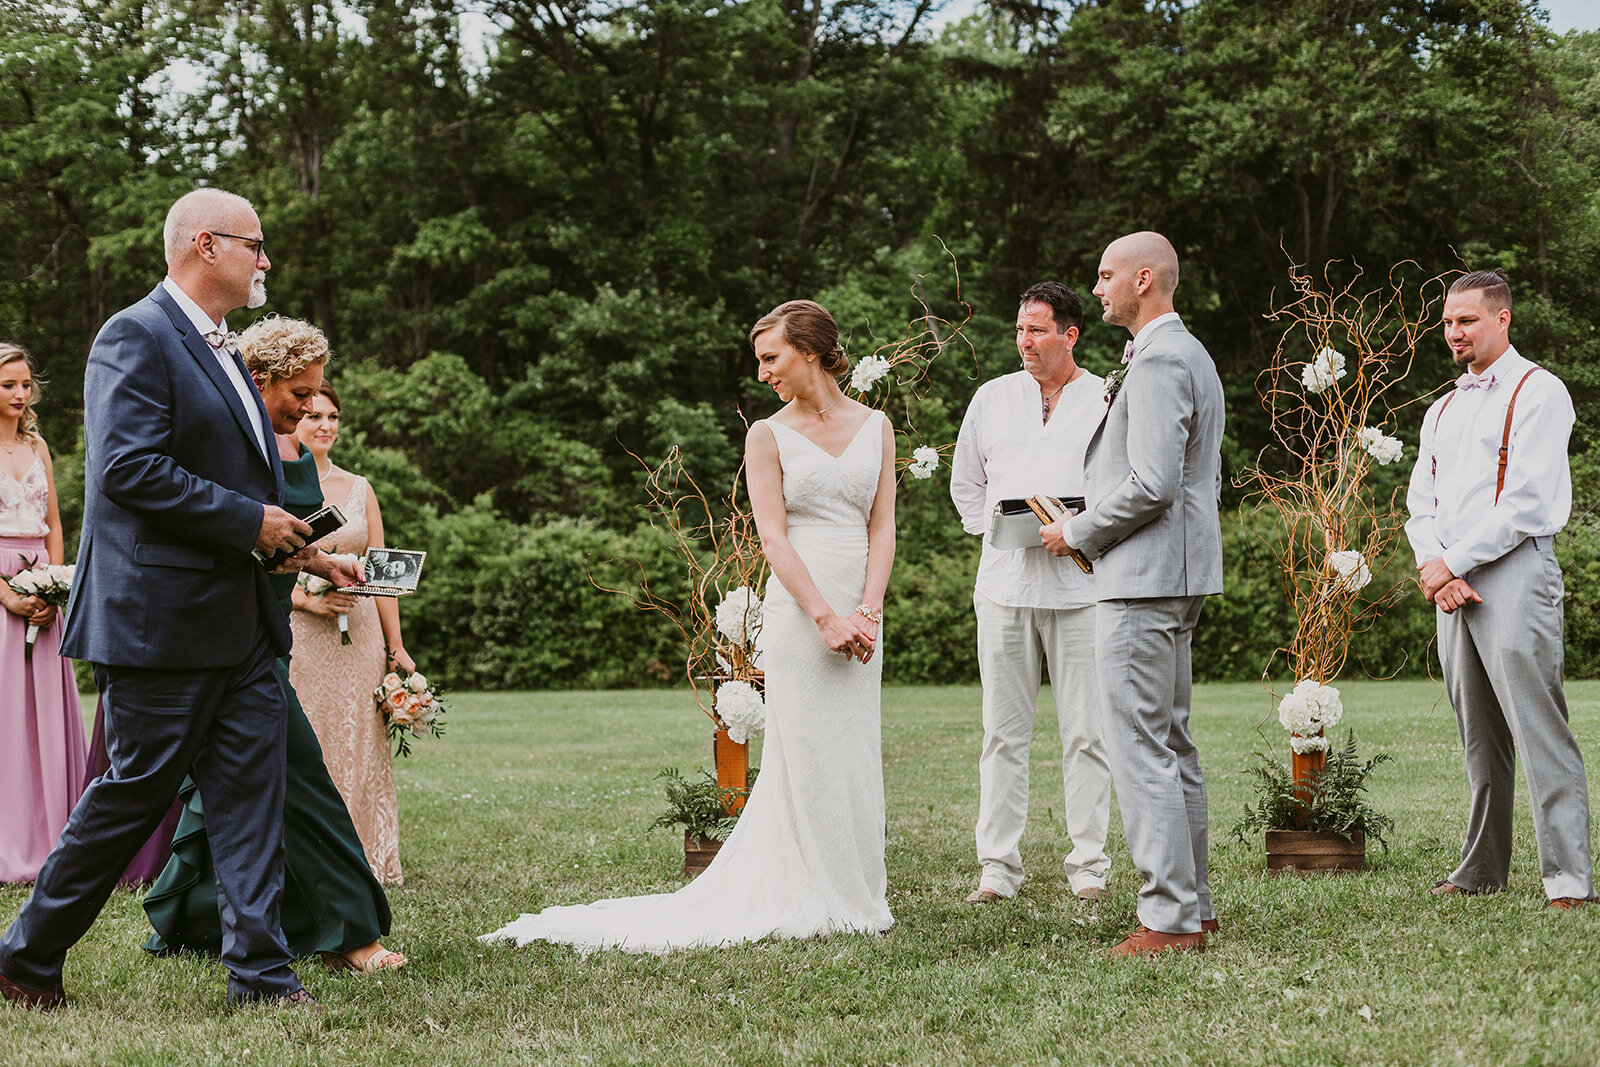 Matt+Katie_WEDDING_MJPHOTO2019-473_websize.jpg